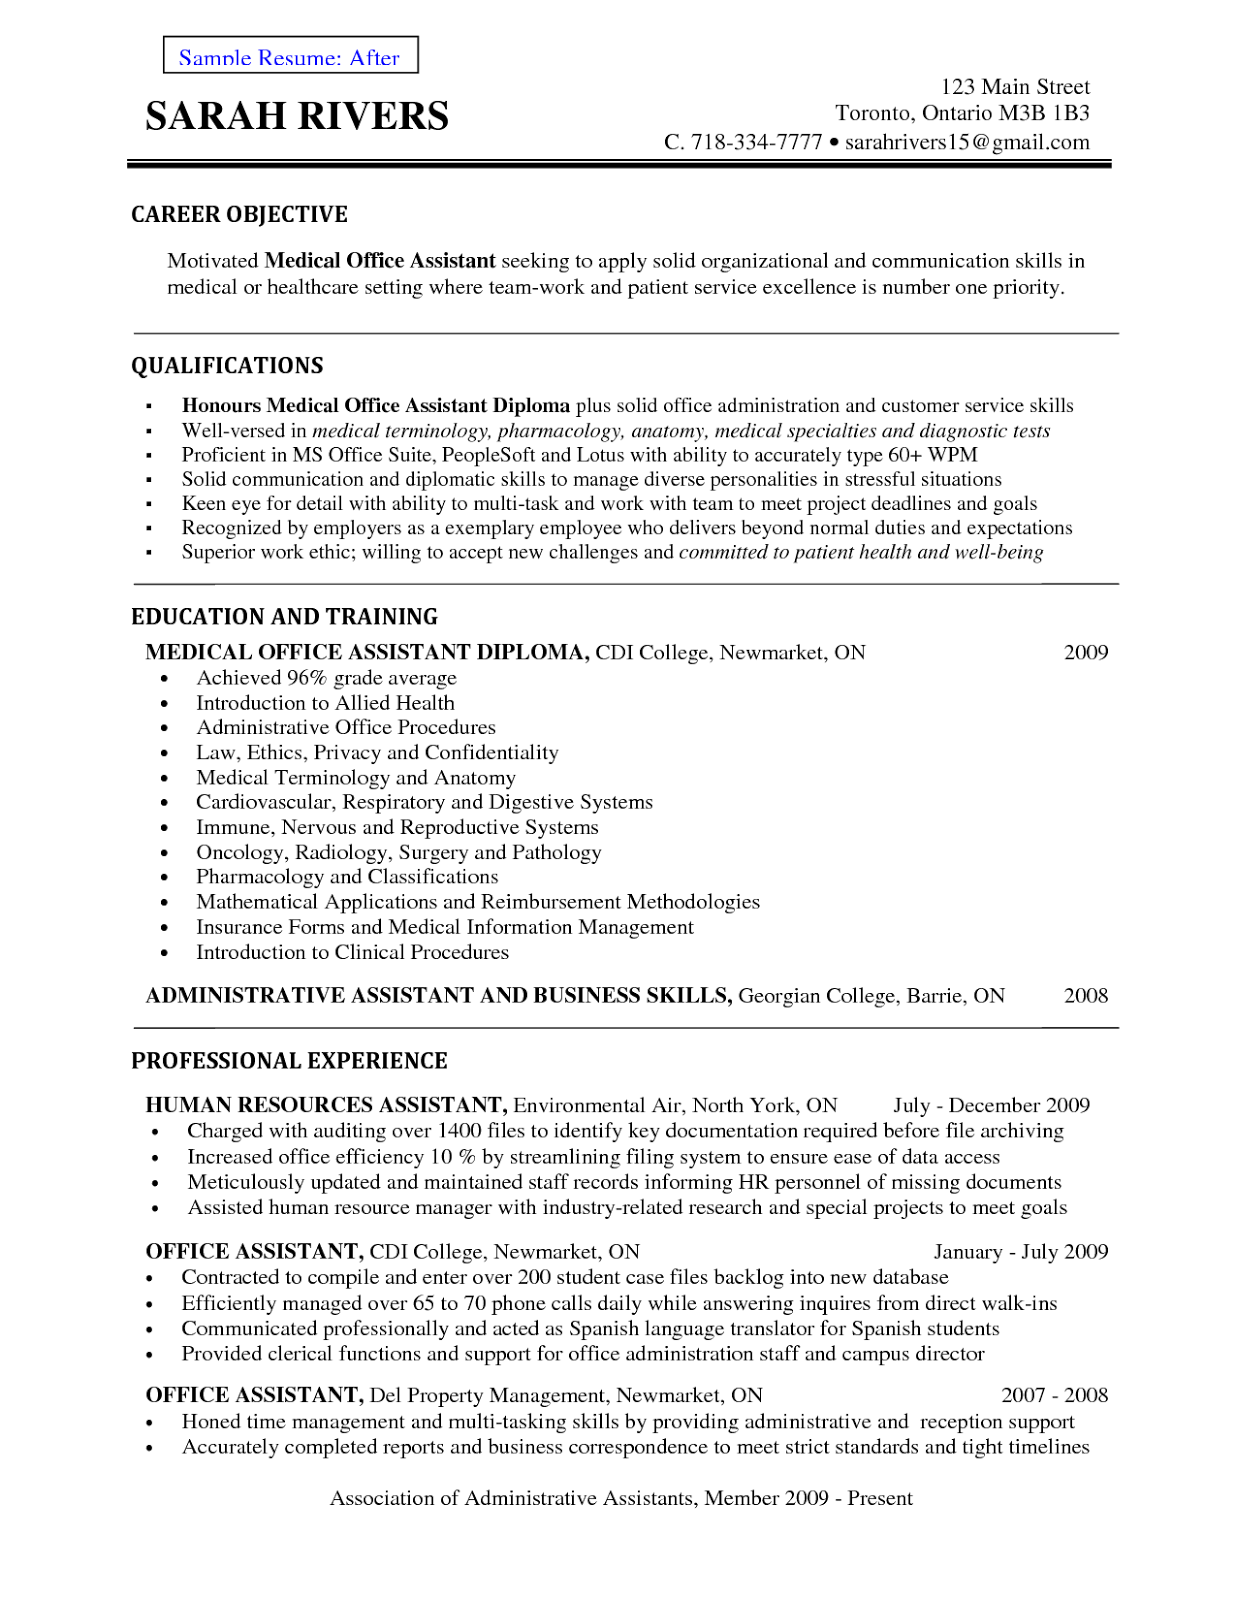 medical assistant resume objective examples college application letter help essay on race matters by cornel